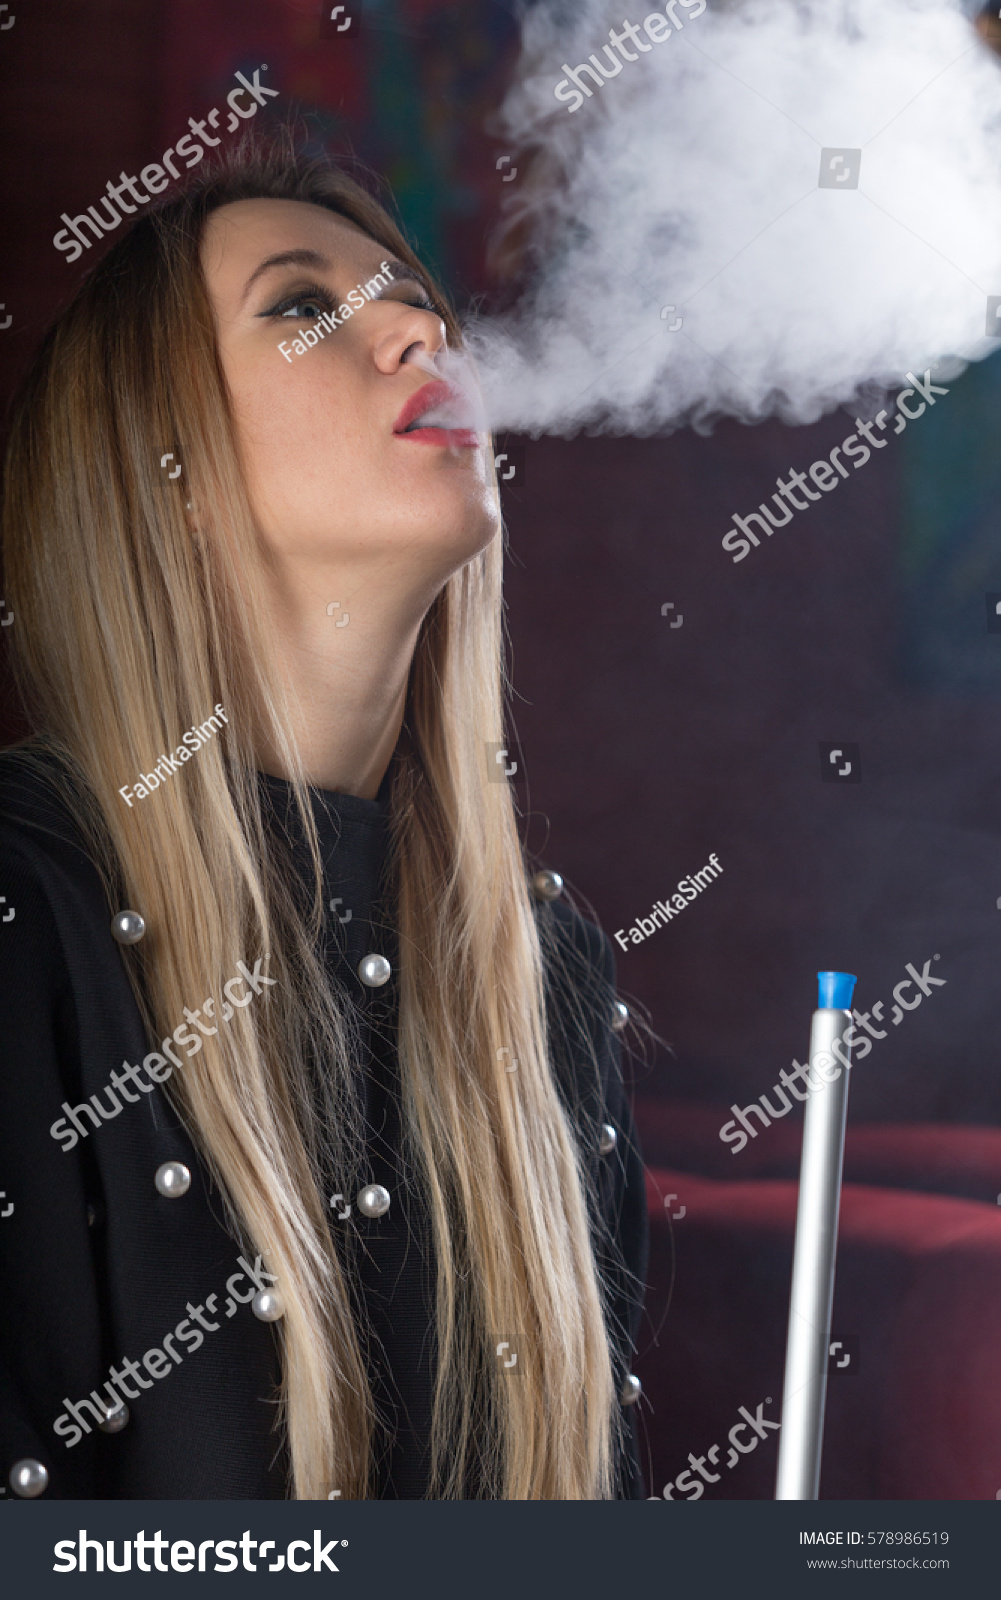 hokah single girls Hookah smoking can be just as dangerous as cigarette smoking, if not more so  learn the differences between the two and the risks hookah  it has been  estimated that a single hookah session can cause  smoking girl.